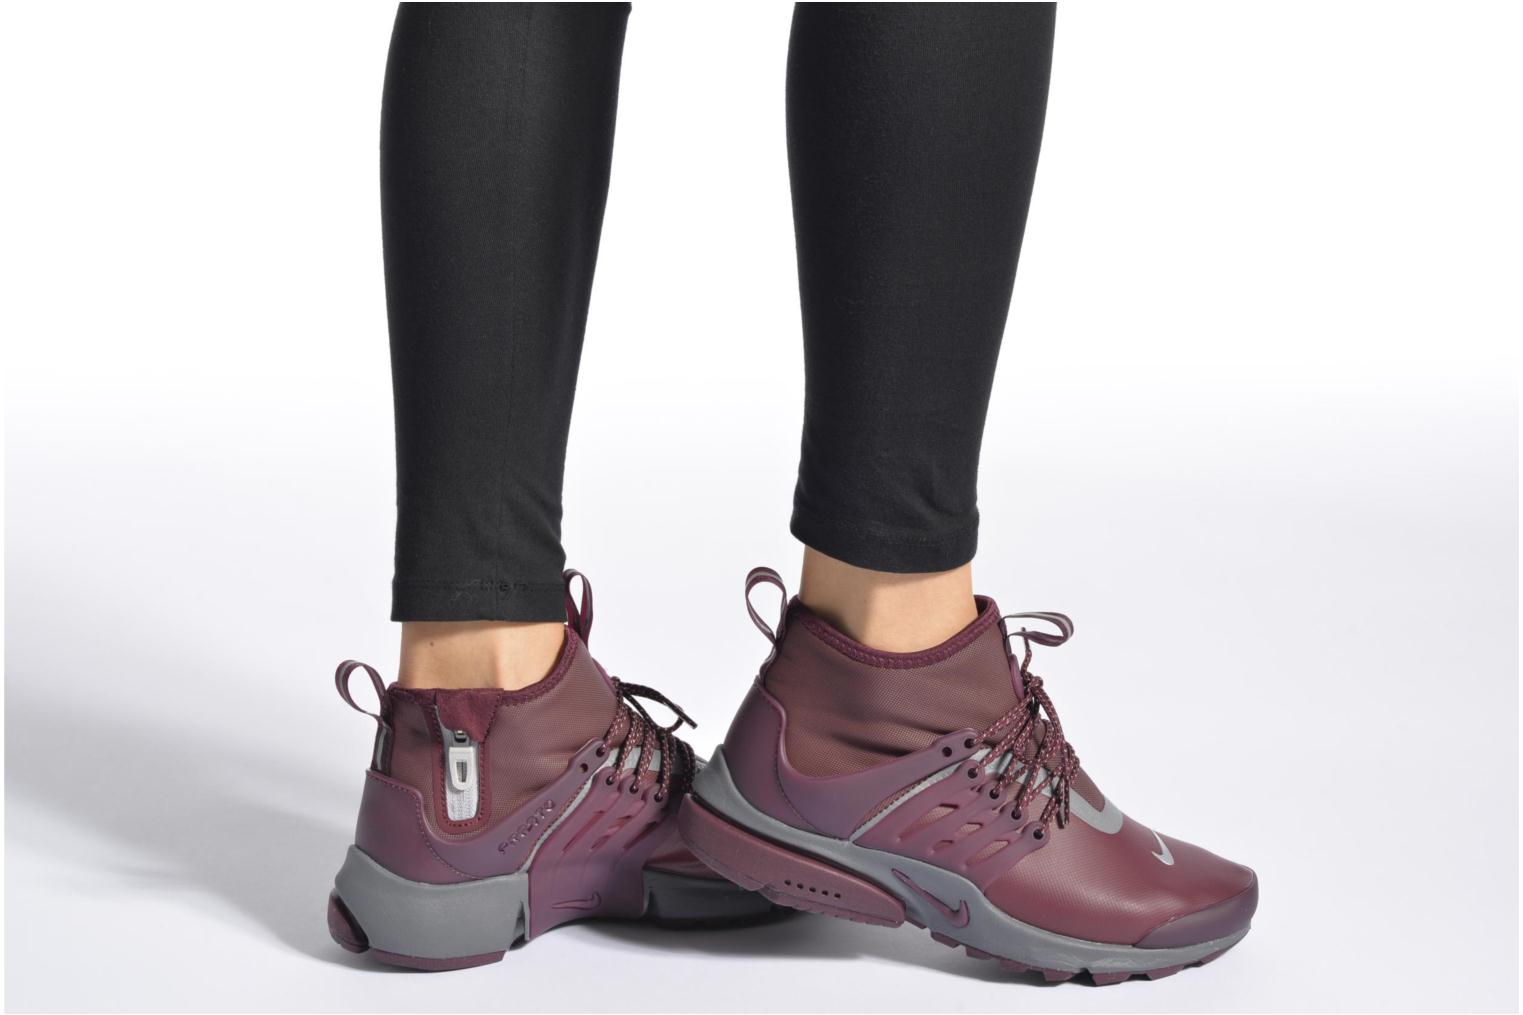 Sneakers Nike W Air Presto Mid Utility Bordeaux se forneden